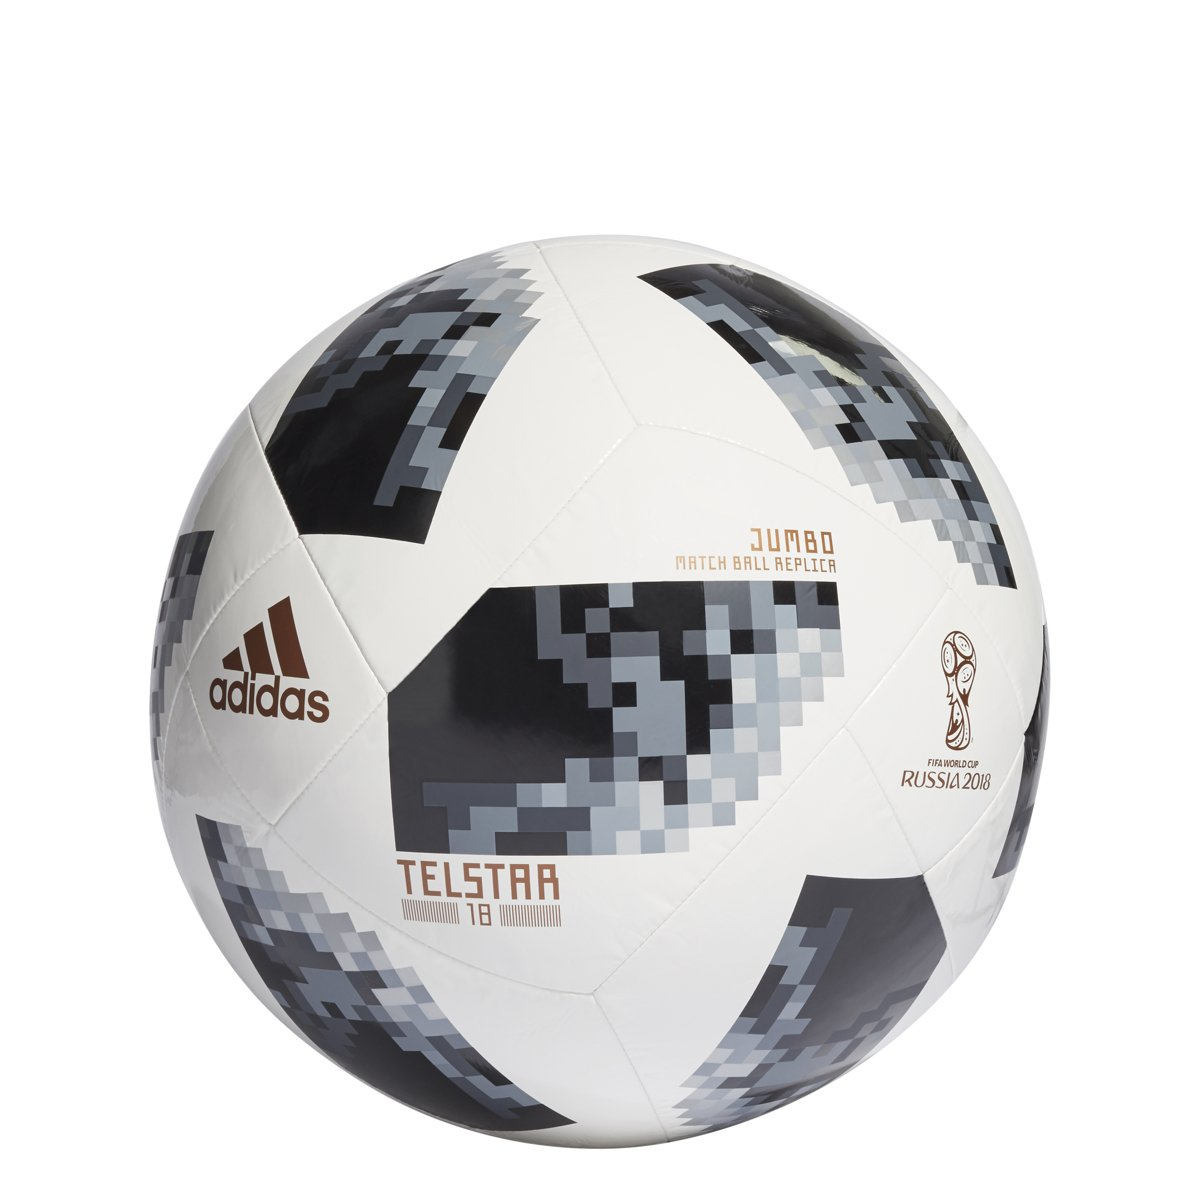 1abbd1a9822 Amazon.com   adidas FIFA World Cup 2018 Russia Jumbo Soccer Ball   Sports    Outdoors